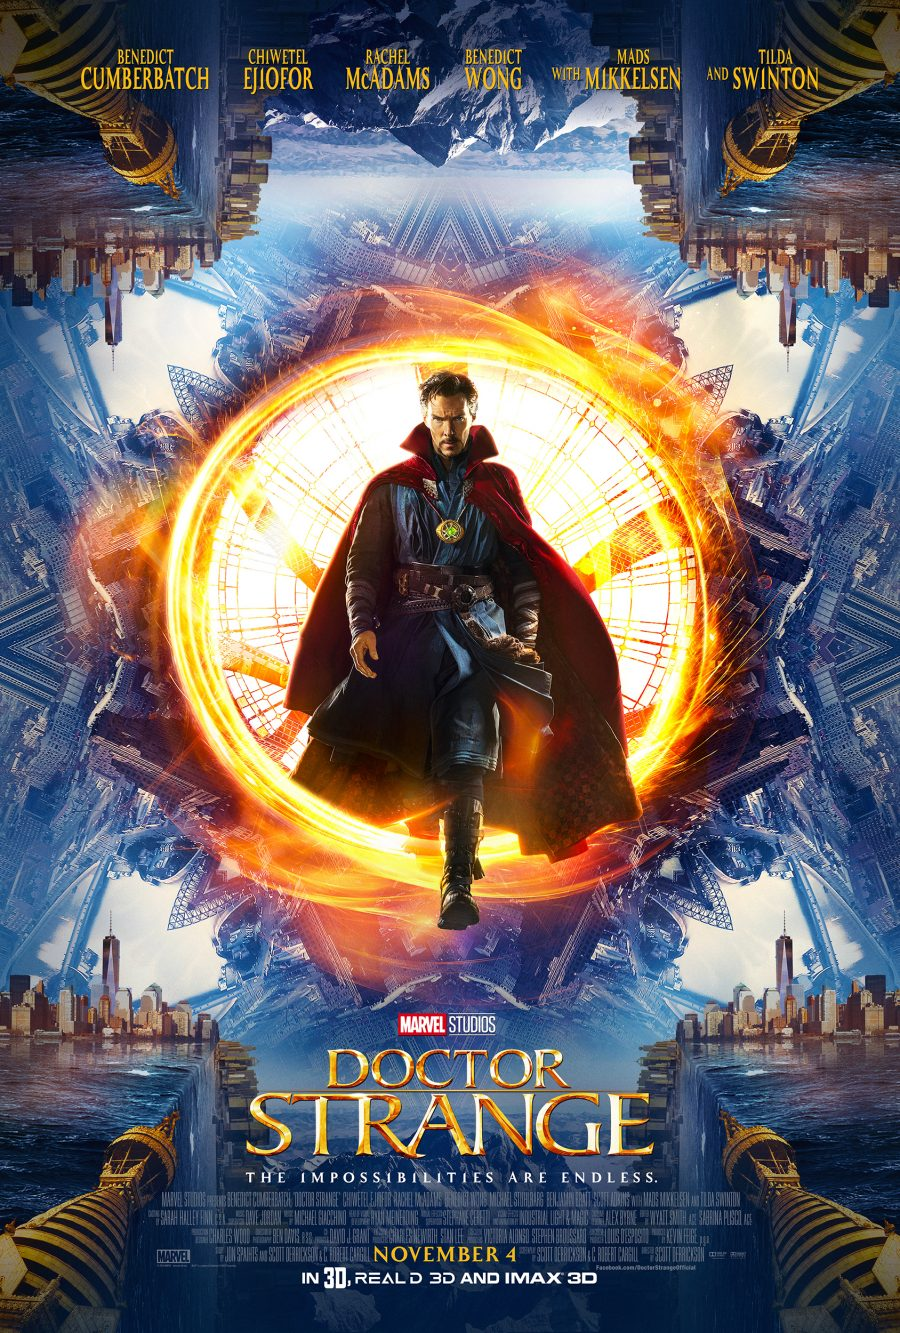 Marvel's Doctor Strange One Sheet Poster - In theaters 11/4/16